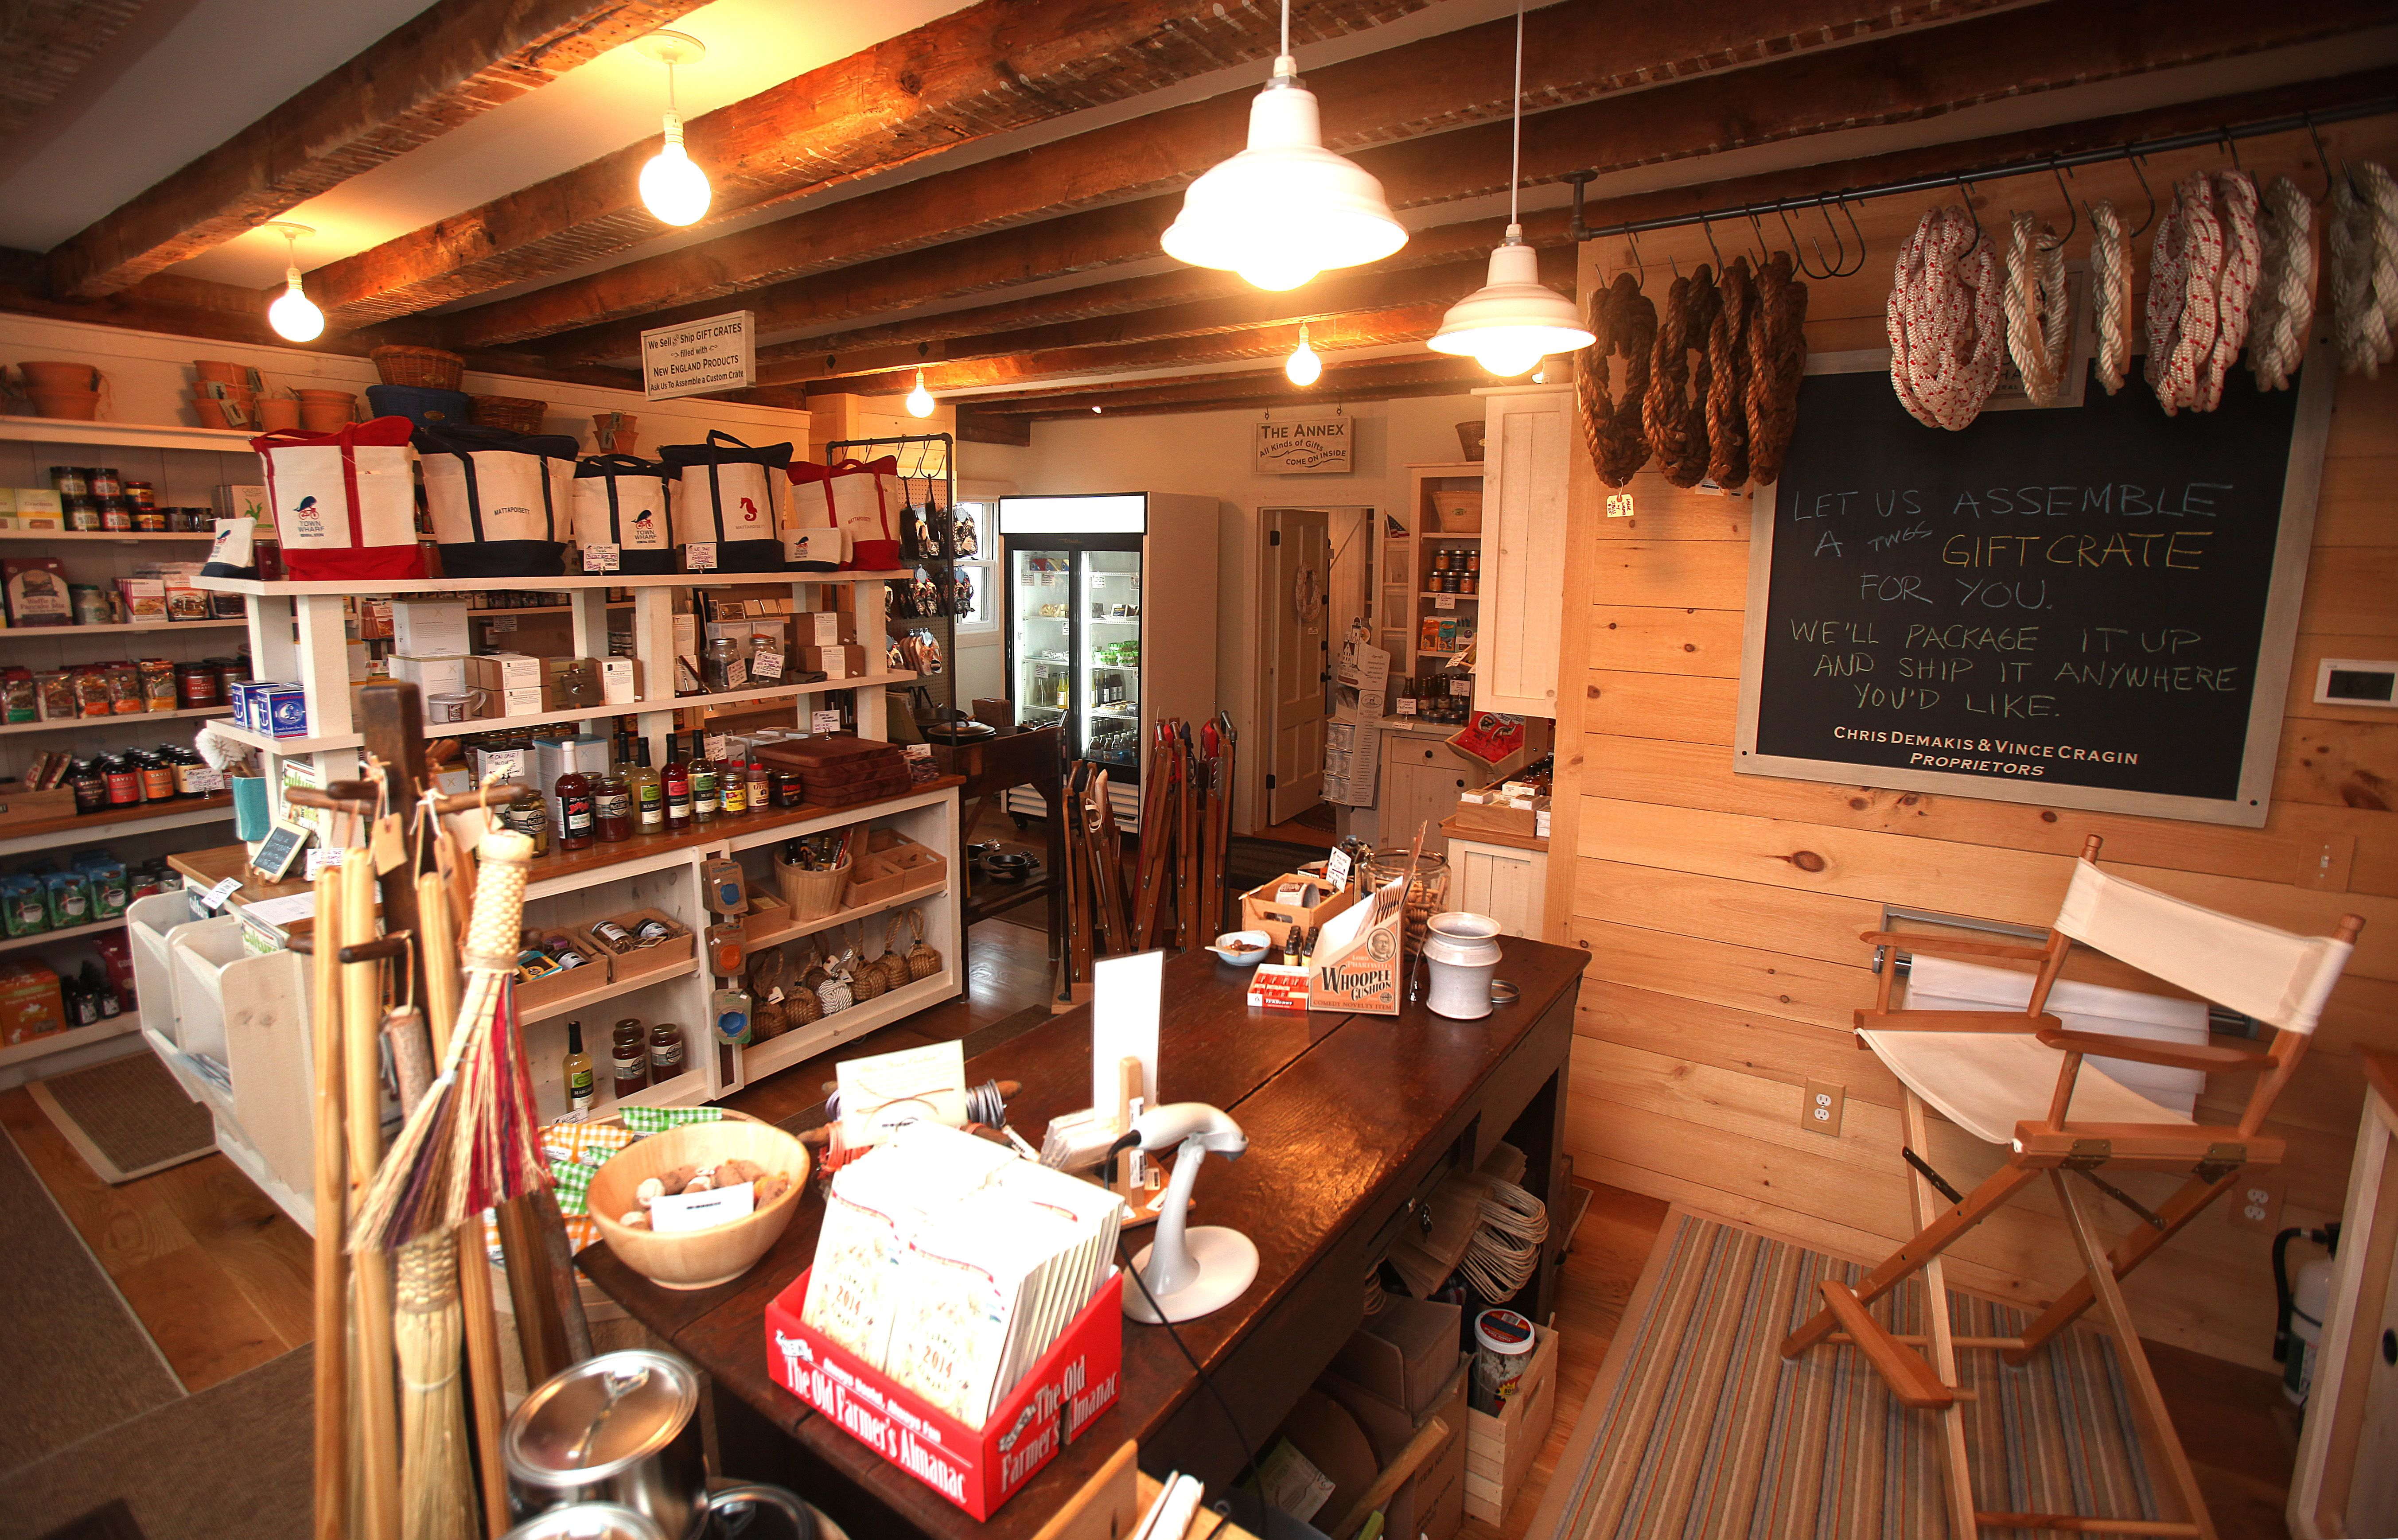 New England shaker chic over at Short Stack stockist Town Wharf General Store in Mattapoisett, MA.